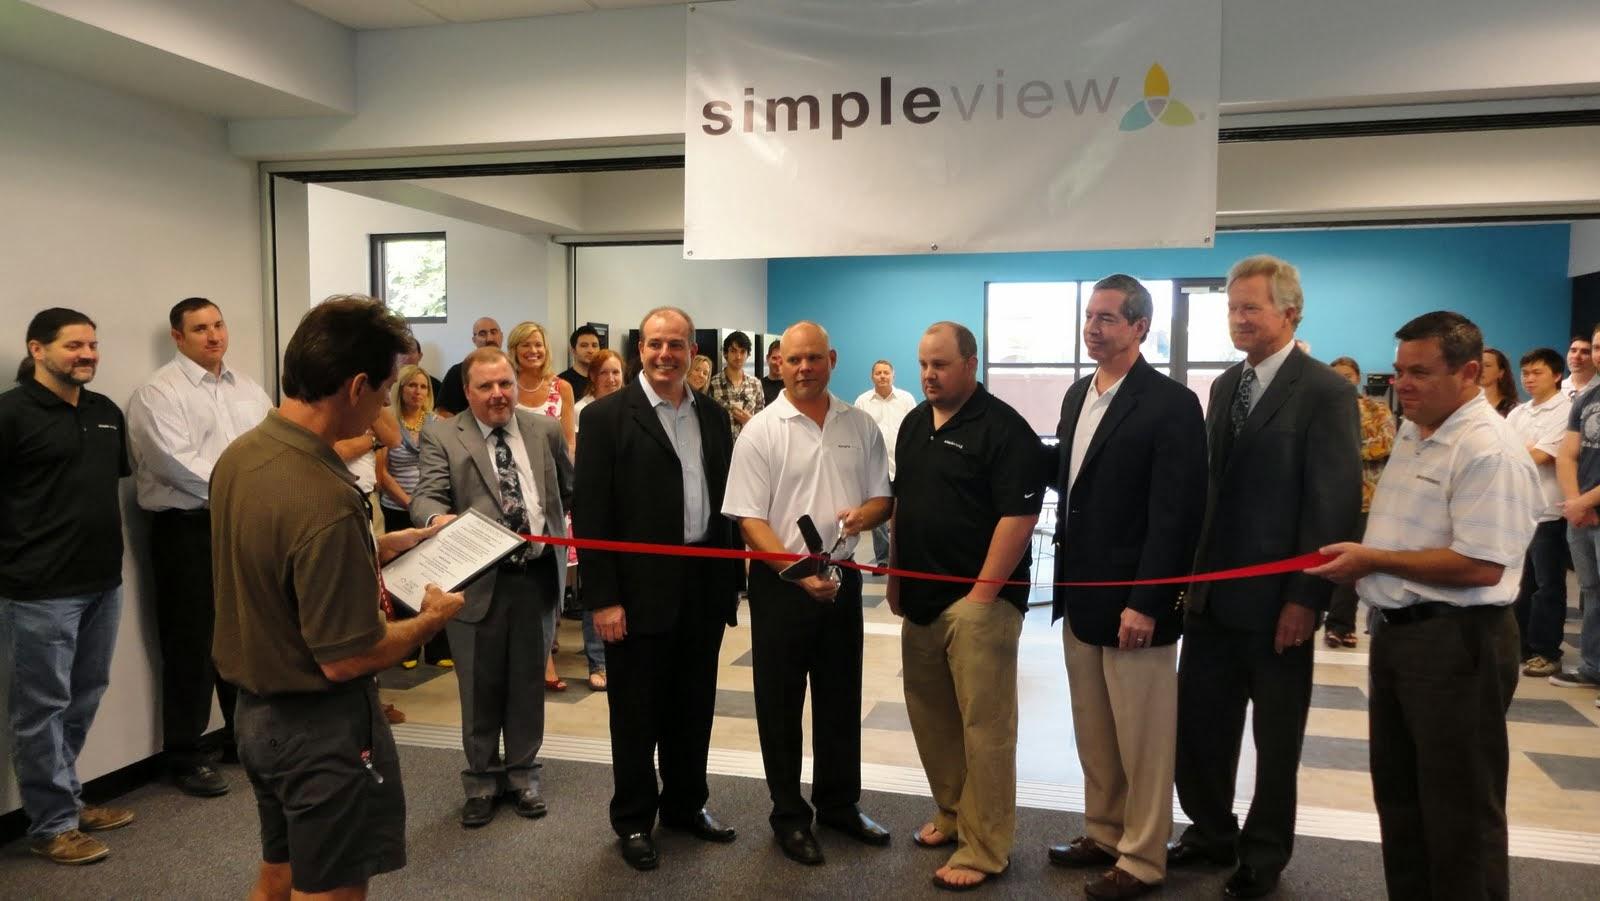 simpleview, a leader in the tourism industry that provides interactive marketing tools and services to destination marketing organizations, has recently expanded their Tucson, Arizona headquarters to accommodate a continual growth to their employee base.  Today, simpleview employs more than 100 tourism and travel industry professionals.